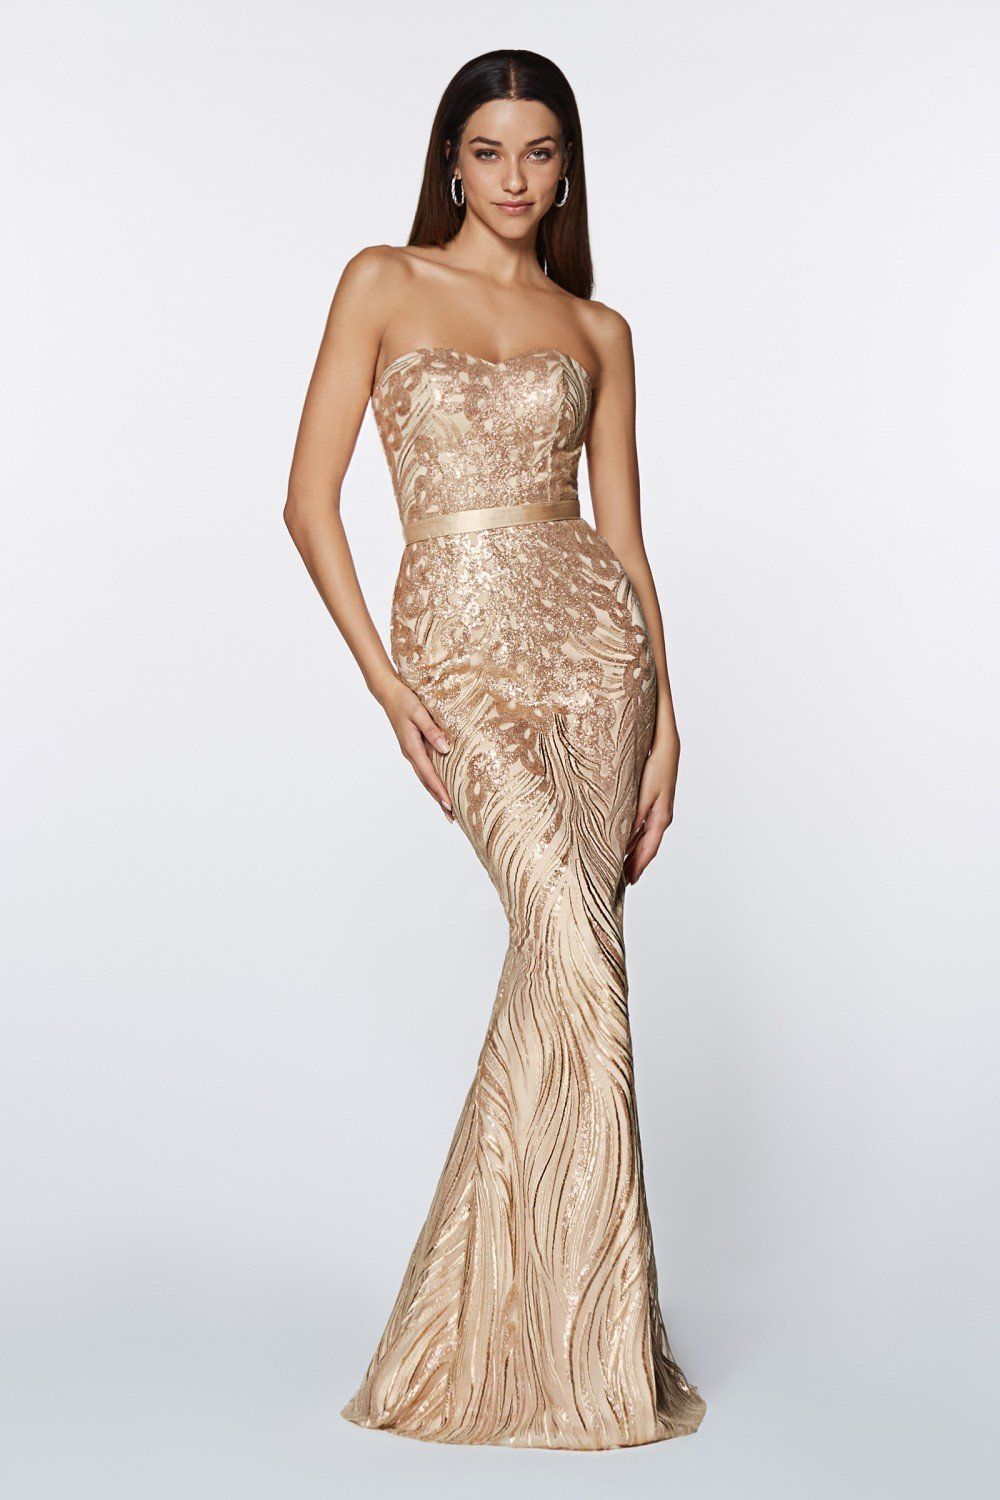 Cinderella Divine Cd0112 Strapless Sequined Sweetheart Sheath Prom Dress In 2021 Strapless Dress Formal Dresses Gold Evening Gown [ 1500 x 1000 Pixel ]